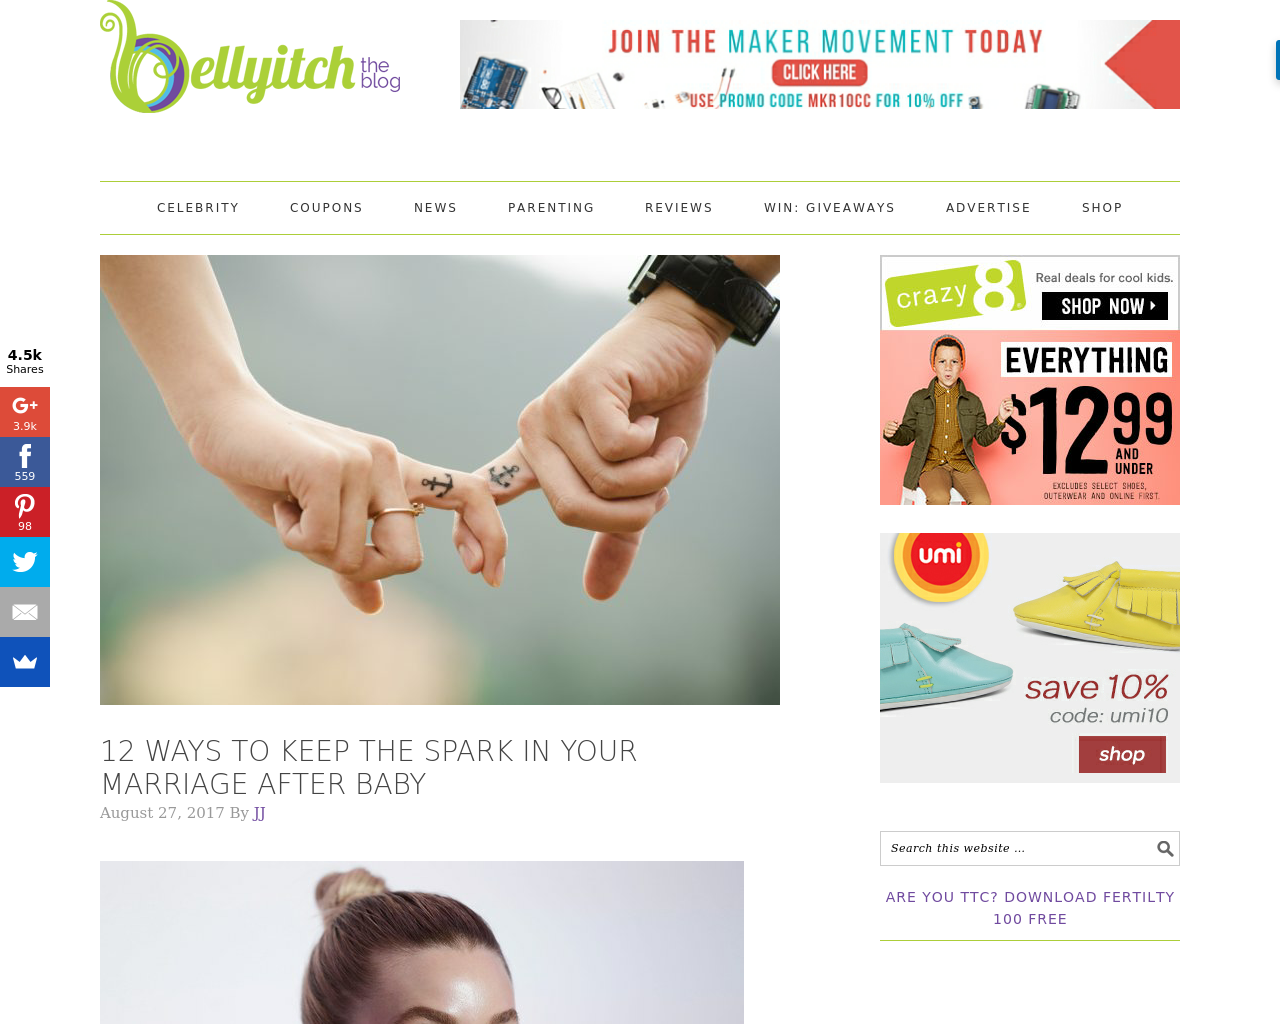 Bellyitch-The-Blog-Advertising-Reviews-Pricing